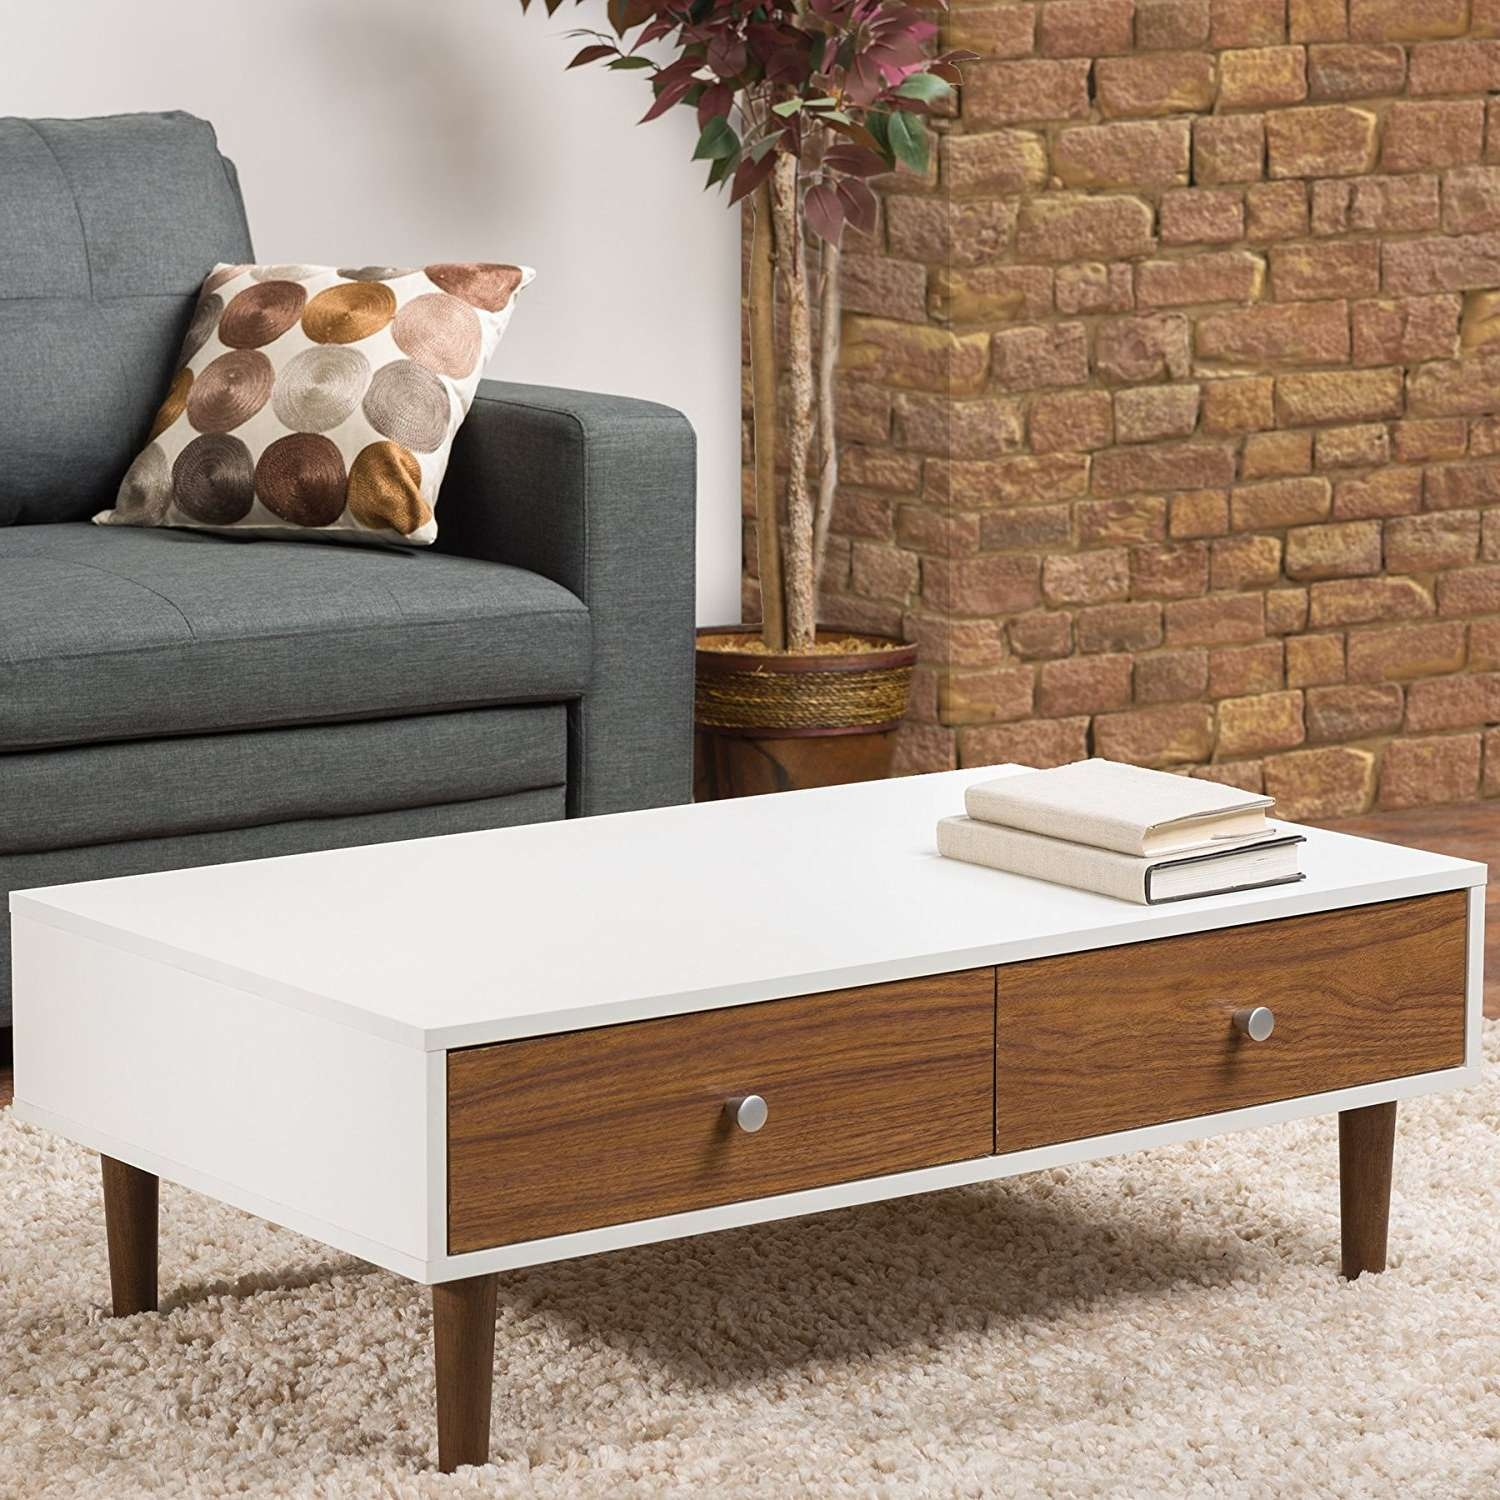 Coffee Table : Marvelous Black Glass Coffee Table Oval Coffee Throughout Well Liked Small Coffee Tables With Drawer (View 12 of 20)